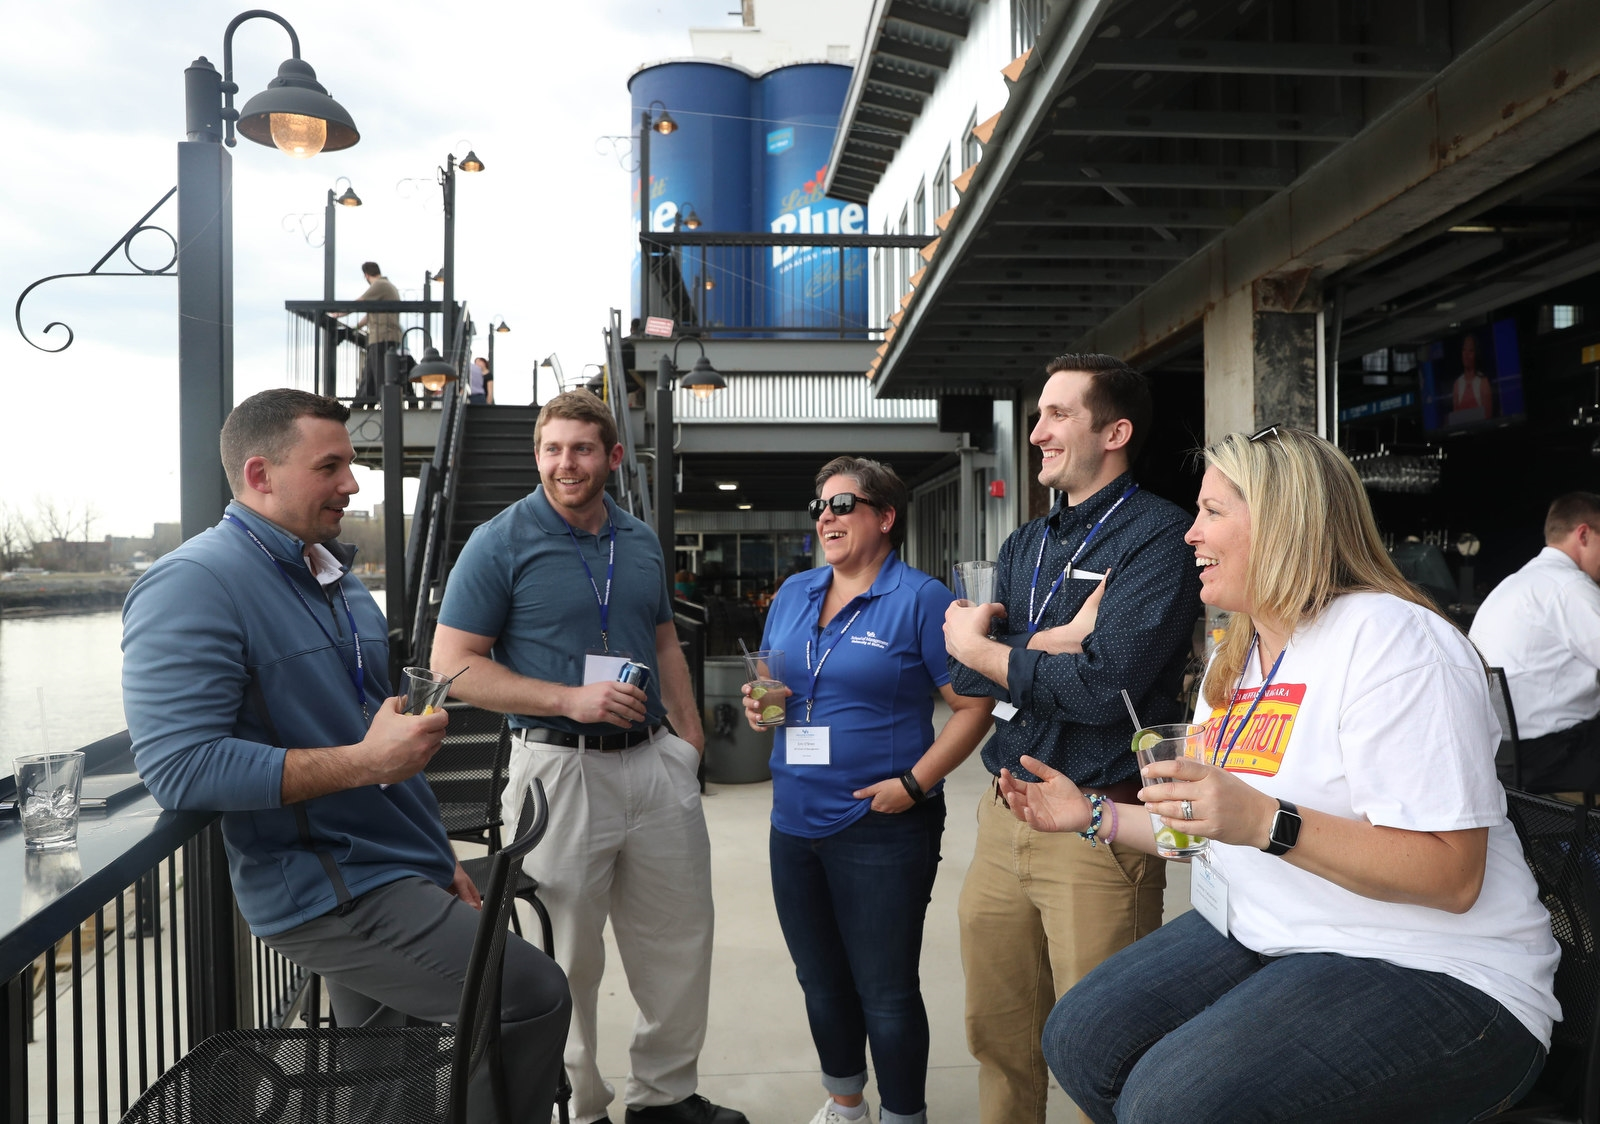 Coworkers and students from UB's MBA program hang out on the patio.  From left are Aaron Shaw, Edward Harof, Erin O'Brien, Briar Baker and Jaimie Falzarano.